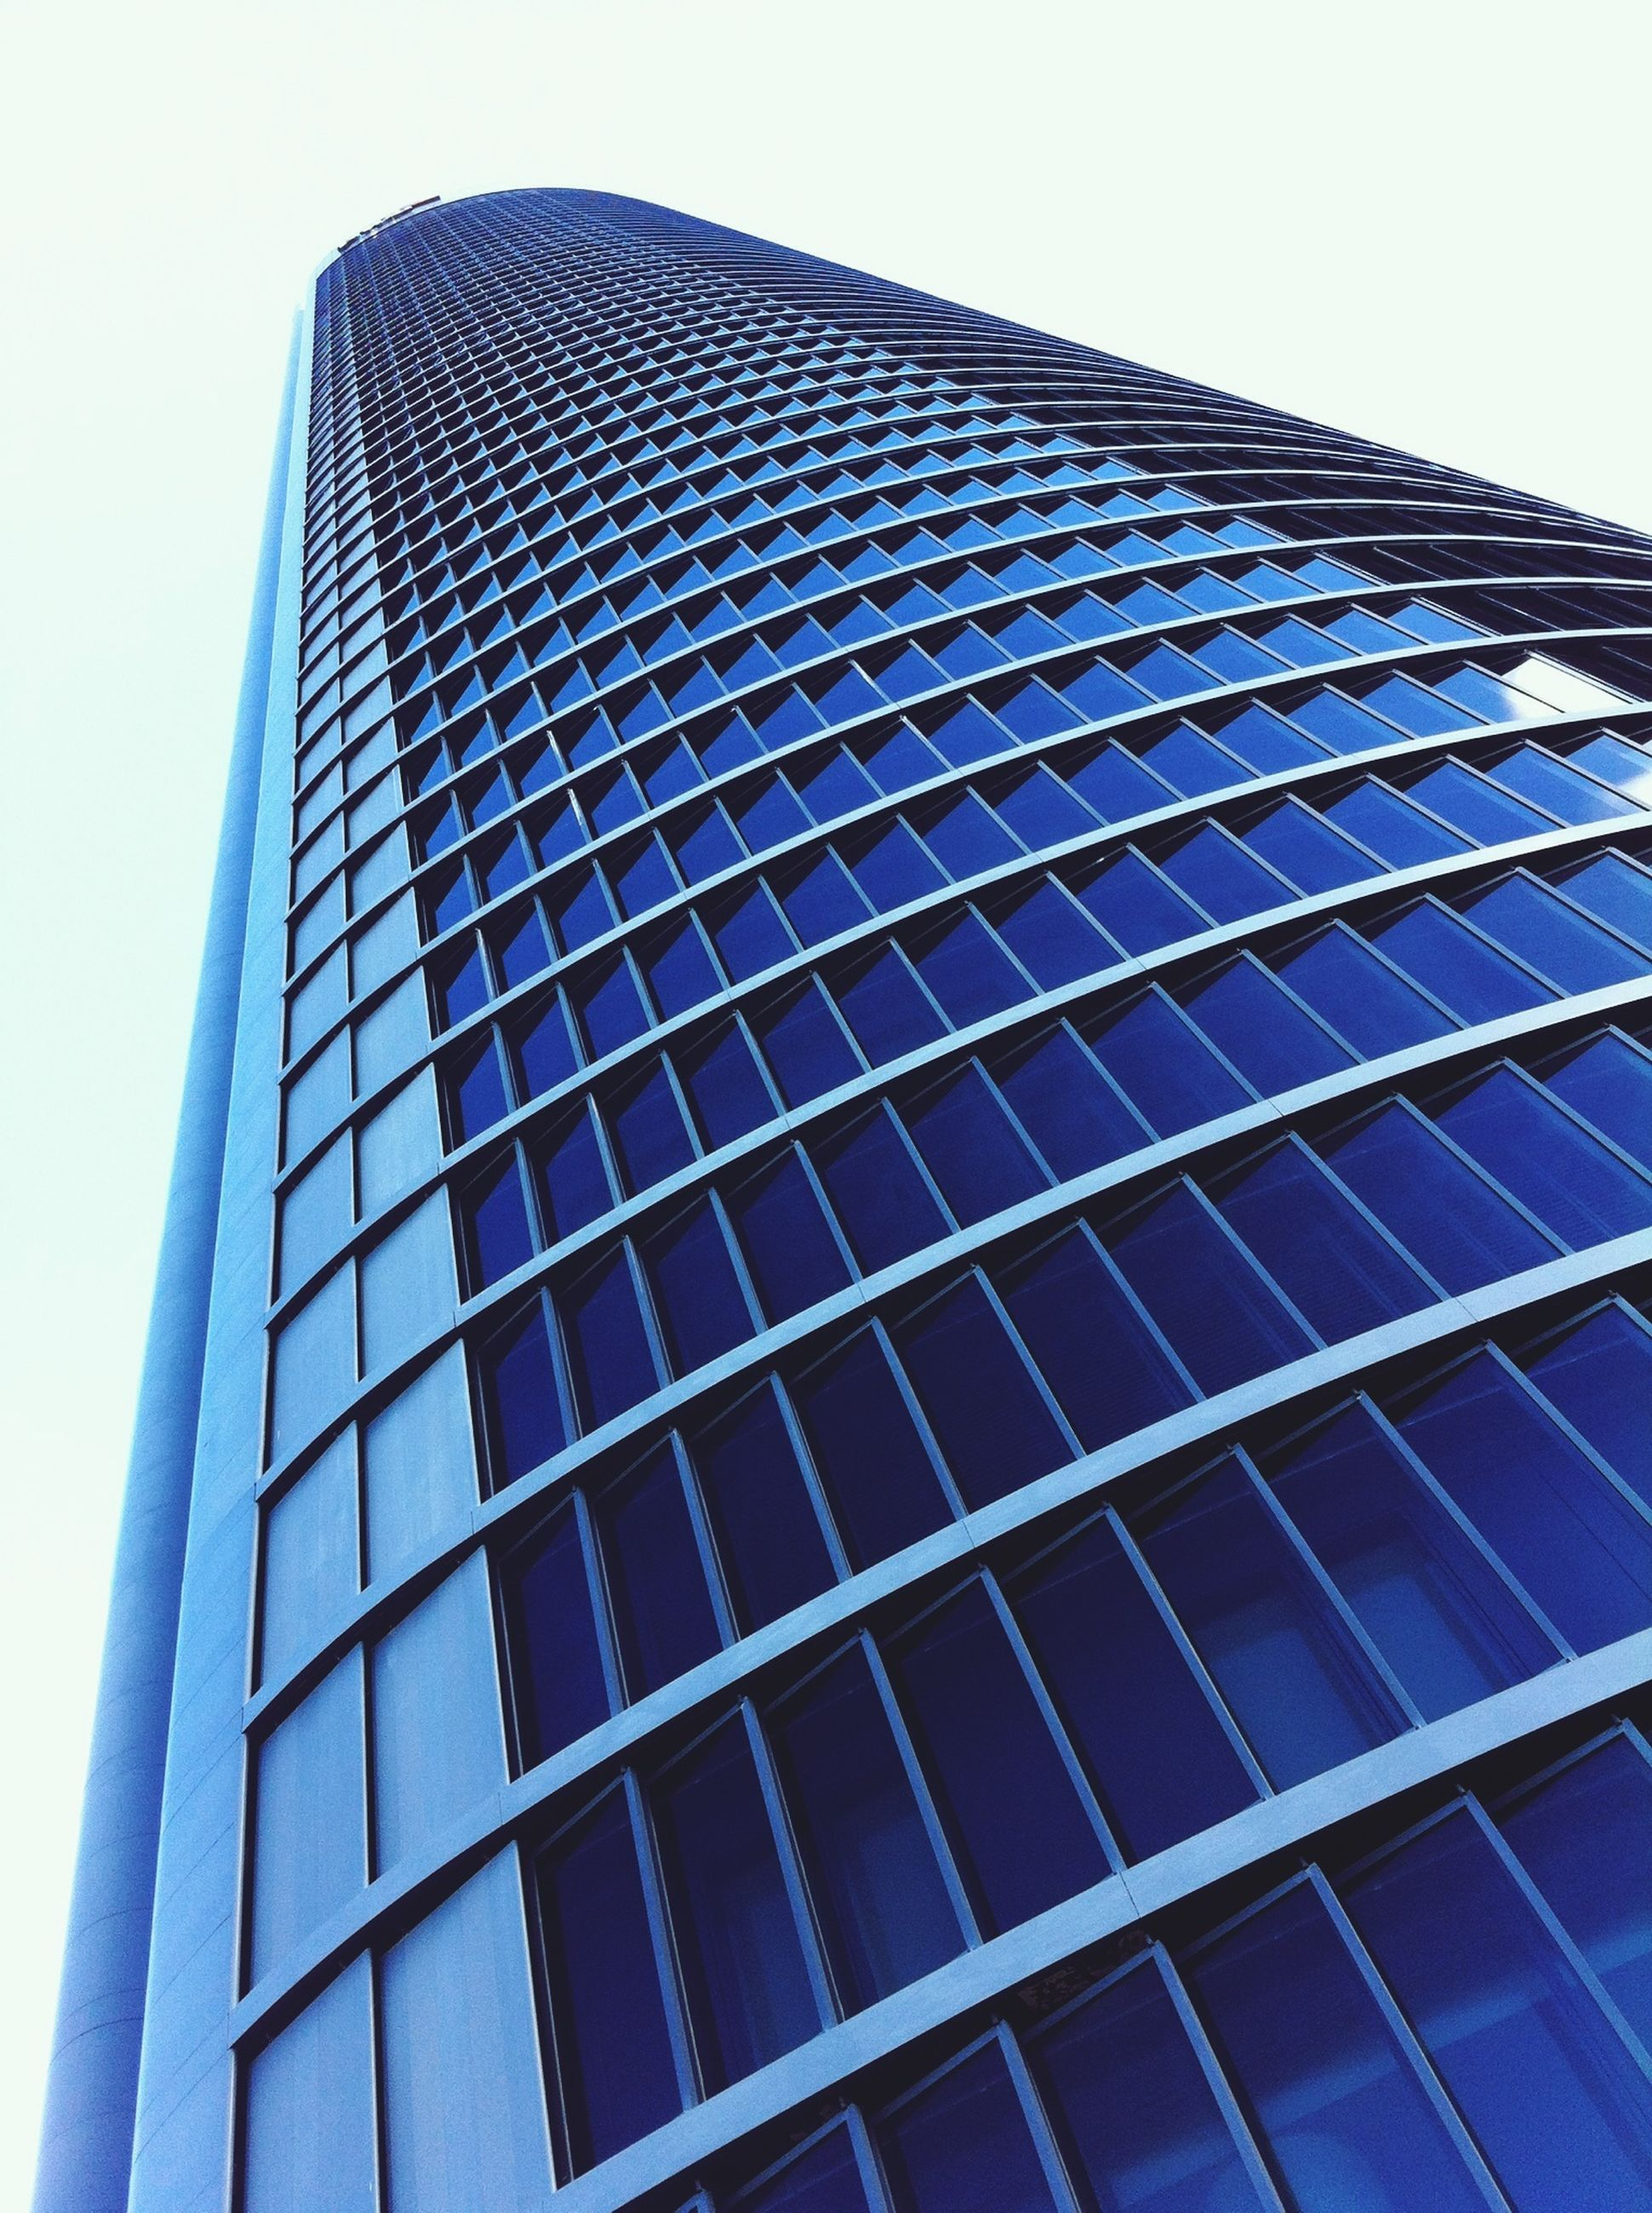 low angle view, architecture, building exterior, built structure, modern, office building, skyscraper, tall - high, city, tower, glass - material, building, clear sky, reflection, sky, tall, day, outdoors, no people, blue